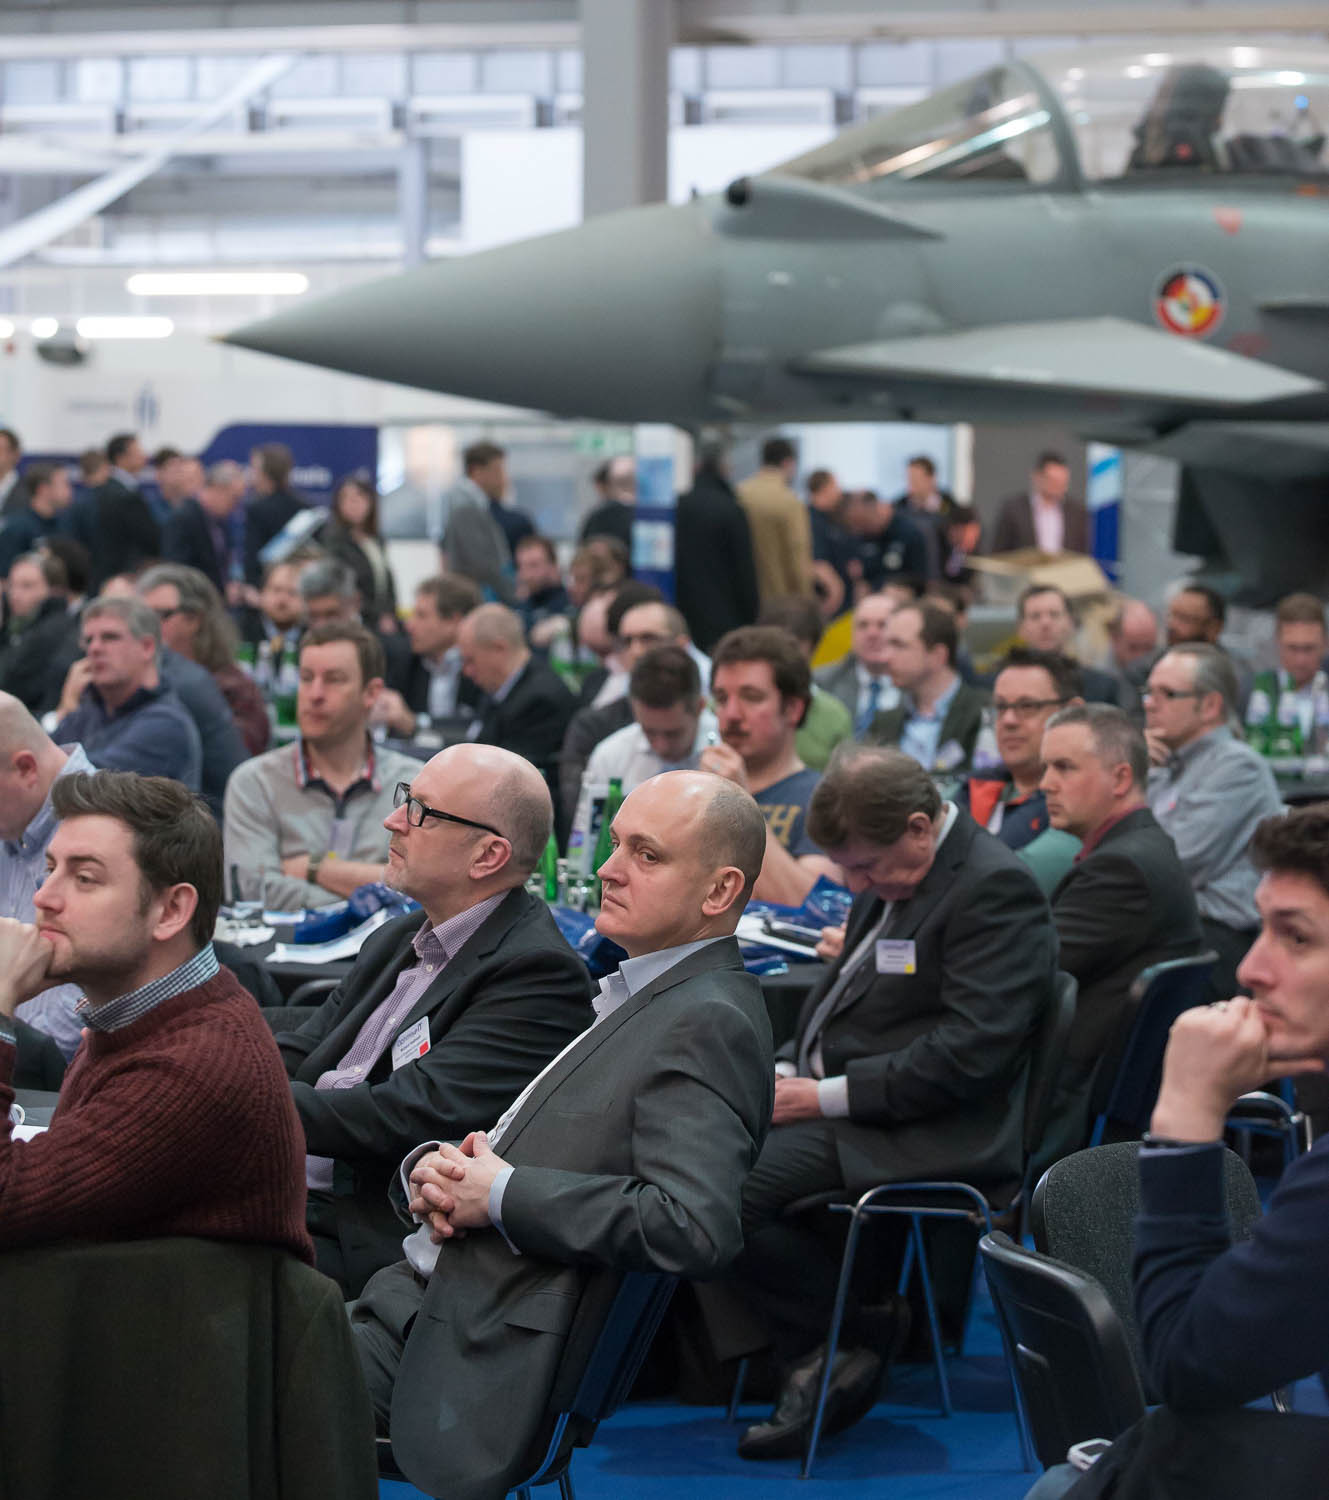 Conference audience at Duxford IWM